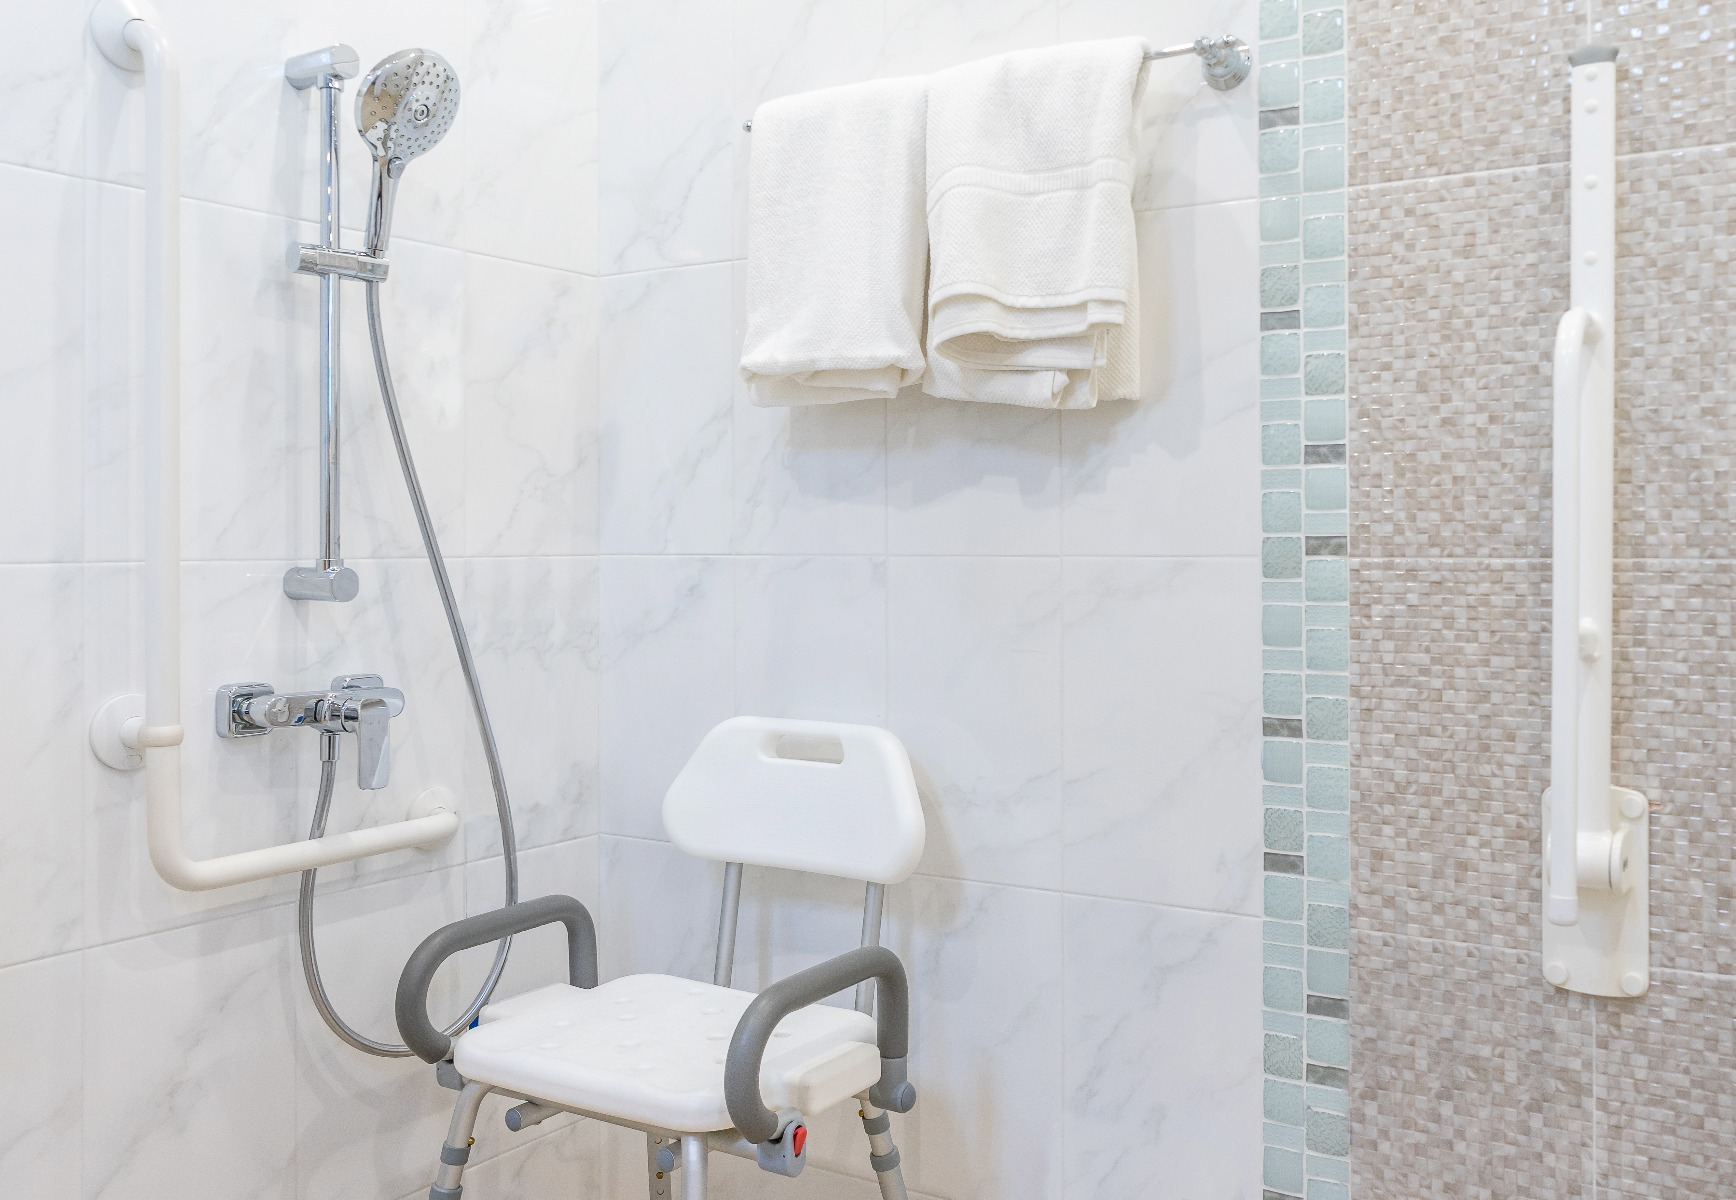 shower with chair in it